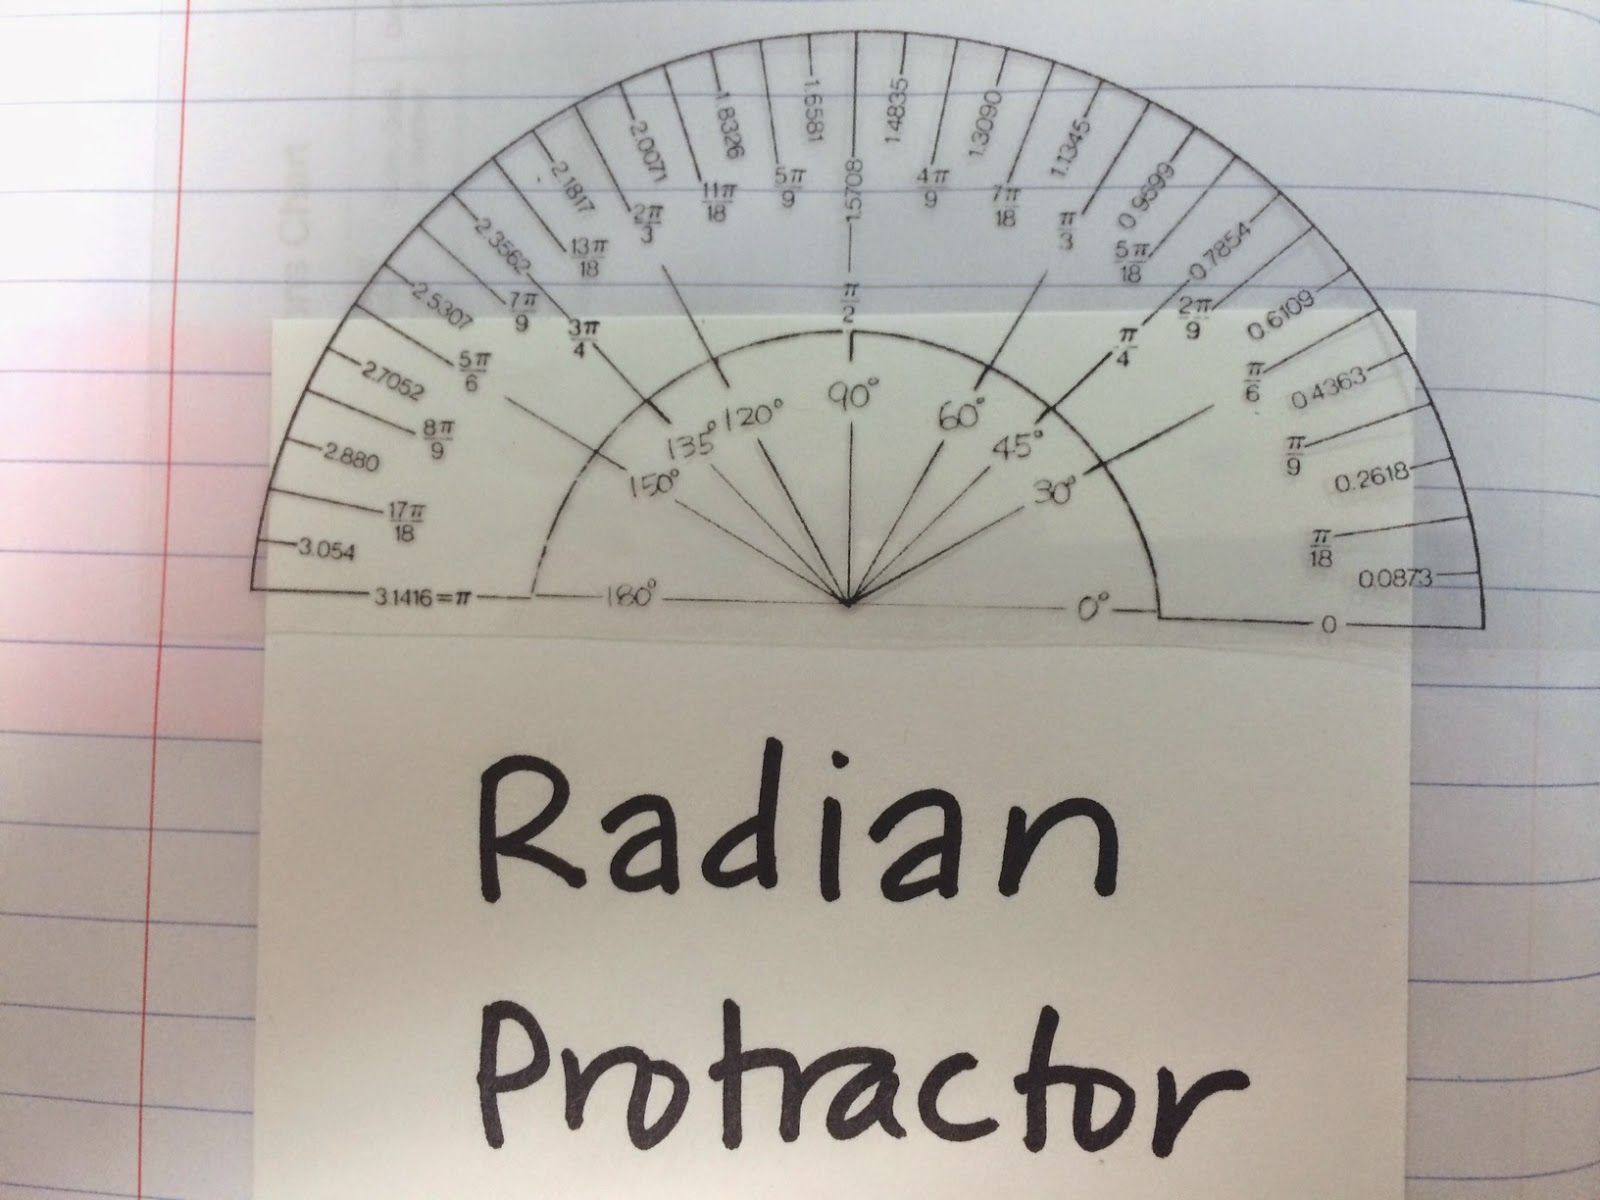 Radian Protractor Printed On Transparency To Put In Interactive Notebook